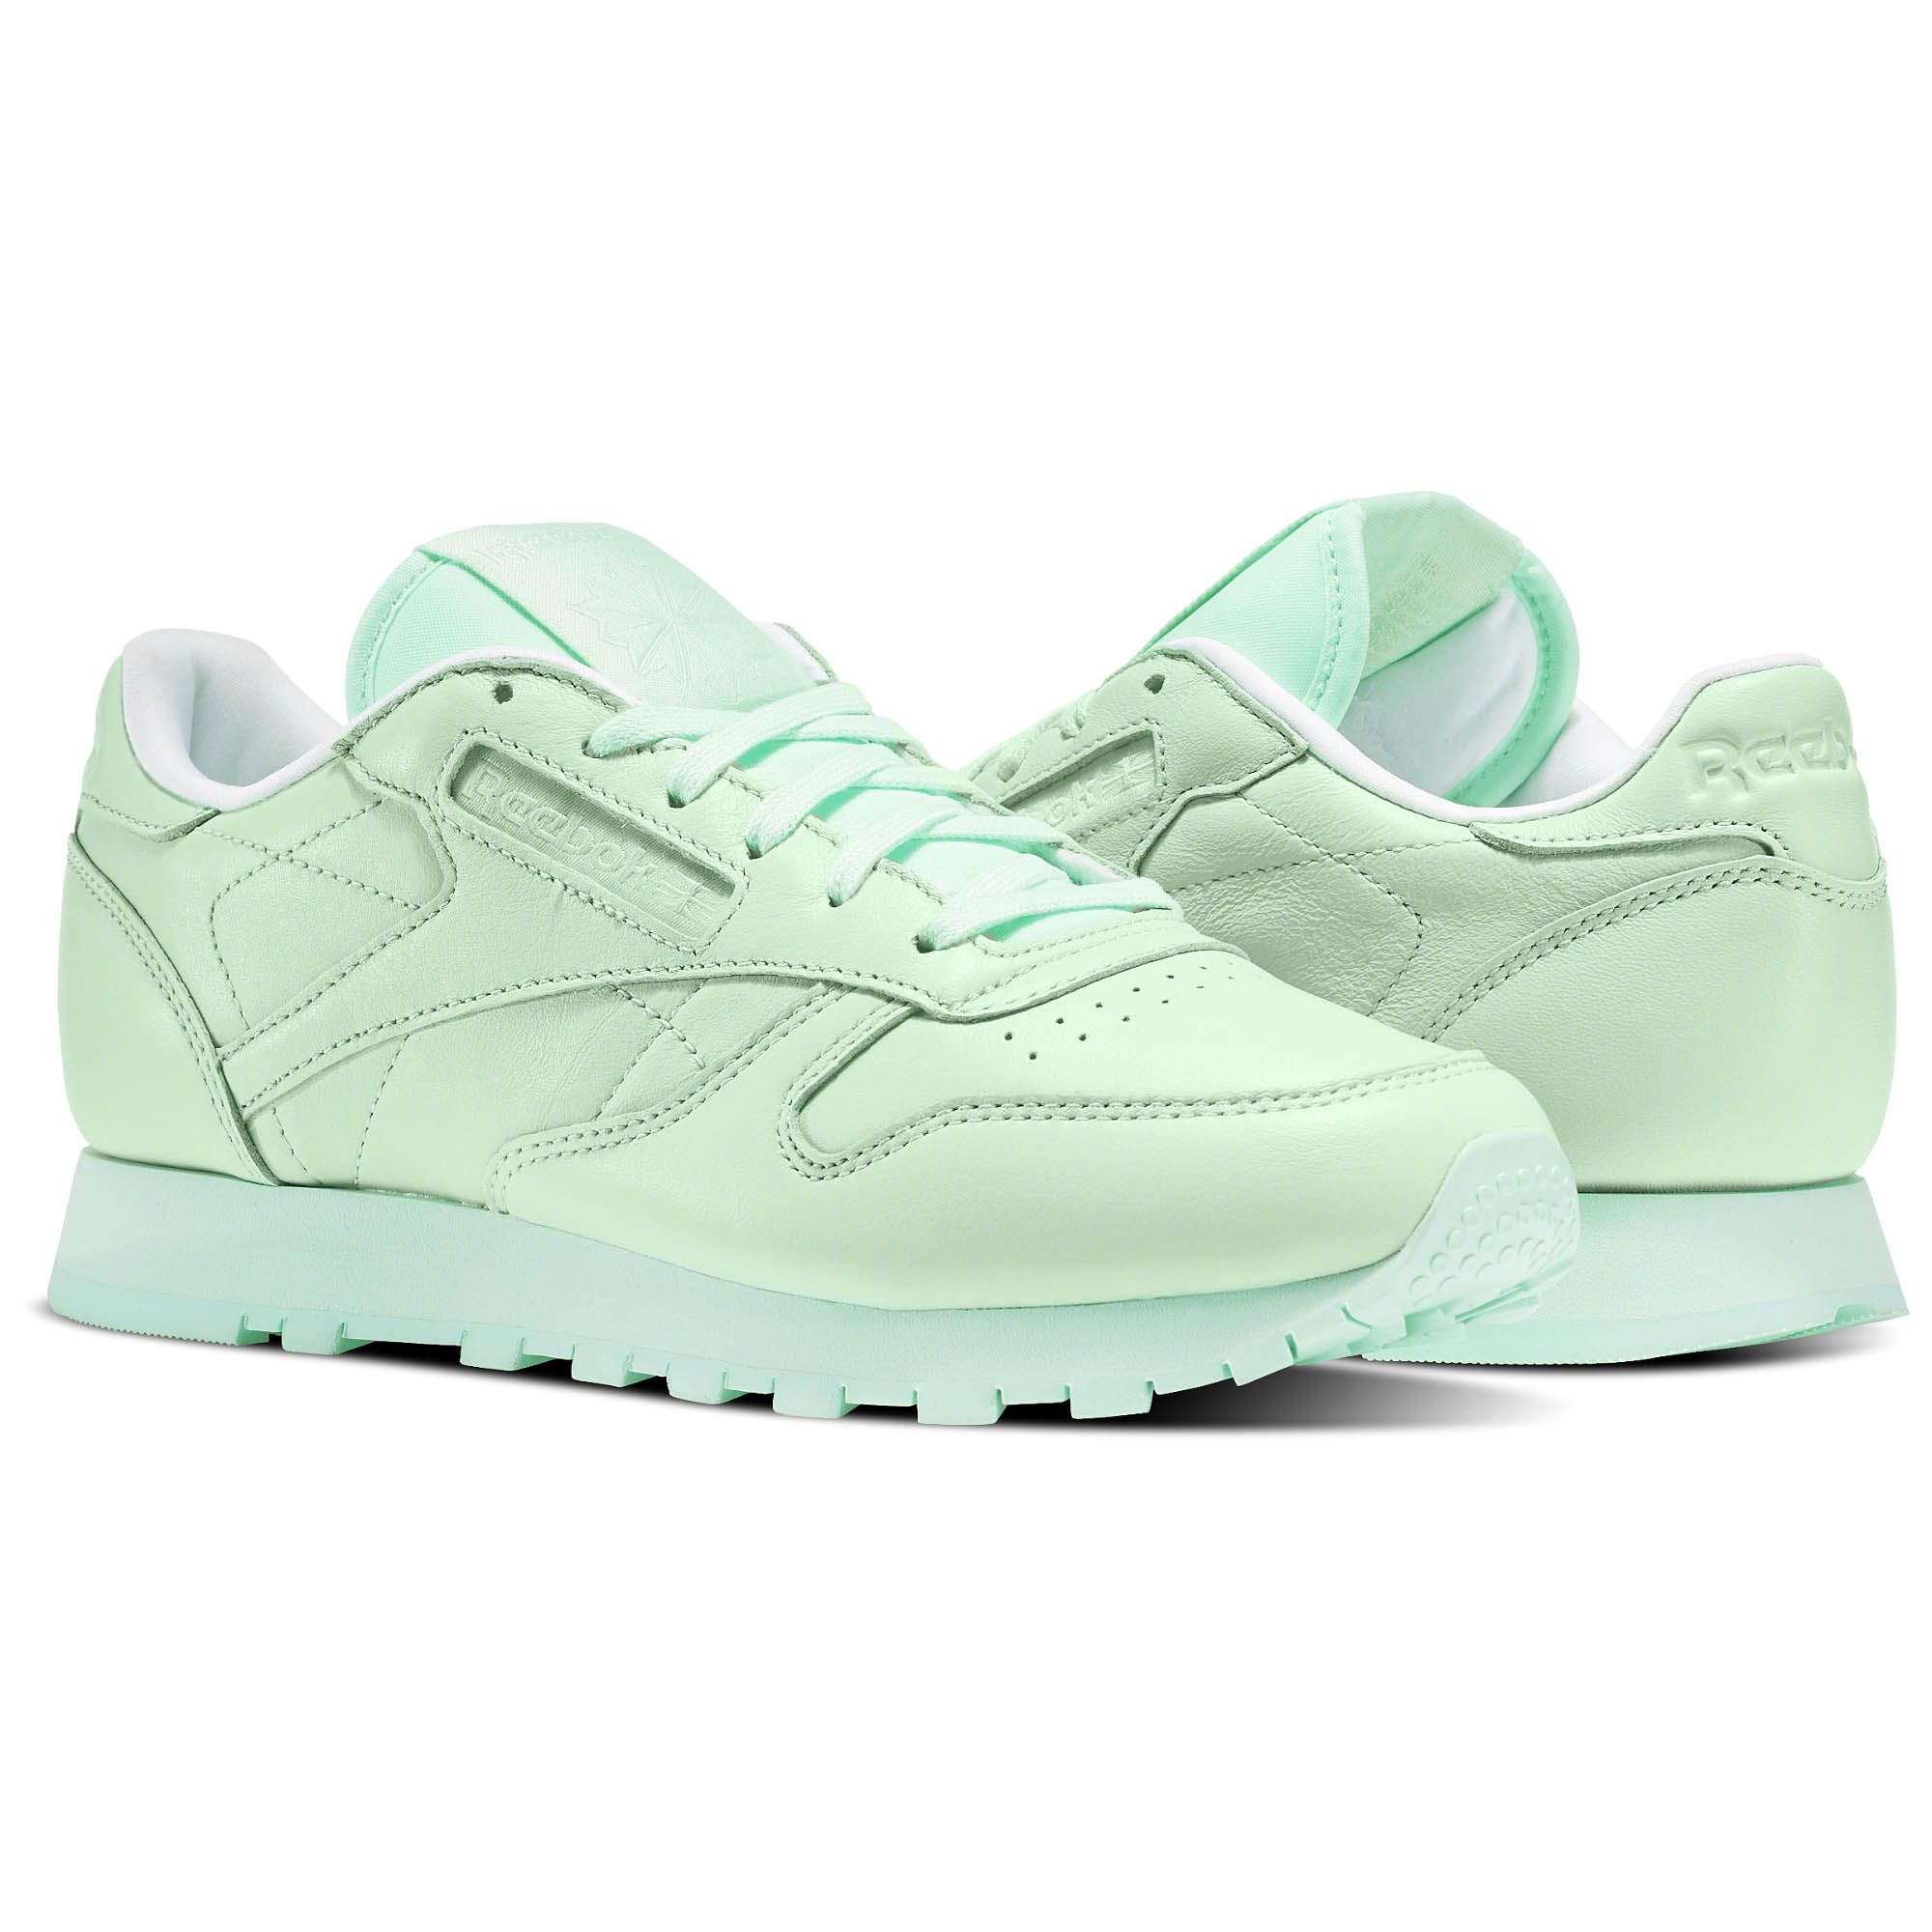 Reebok Classic Leather Spirit shoes turquoise